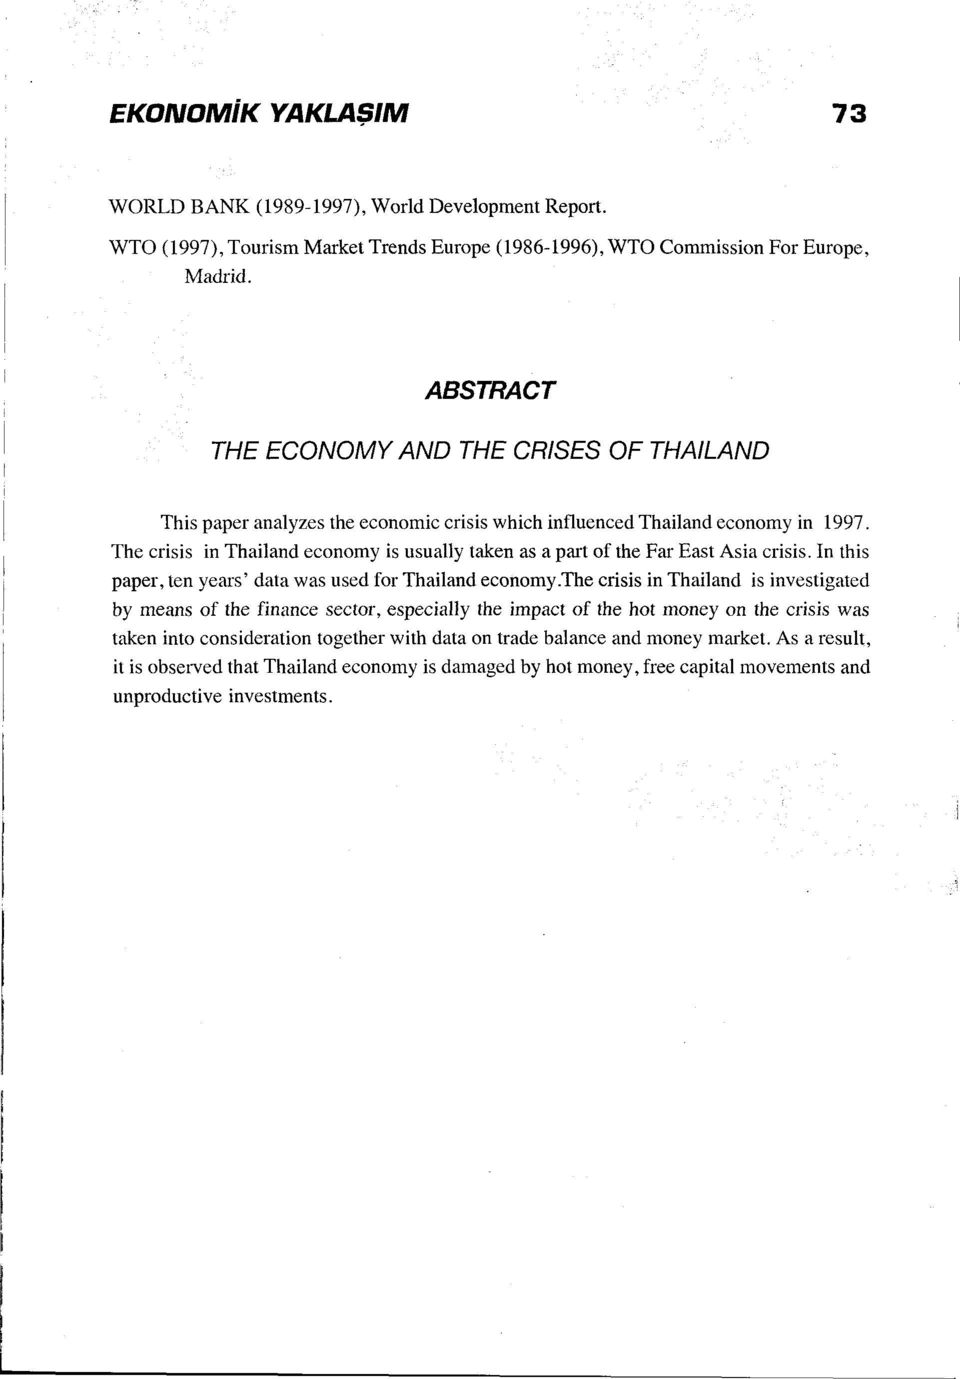 The erisis in Thailand economy is usually taken asa part of the Far East Asia crisis. In this paper, ten years' data was used for Thailand economy.